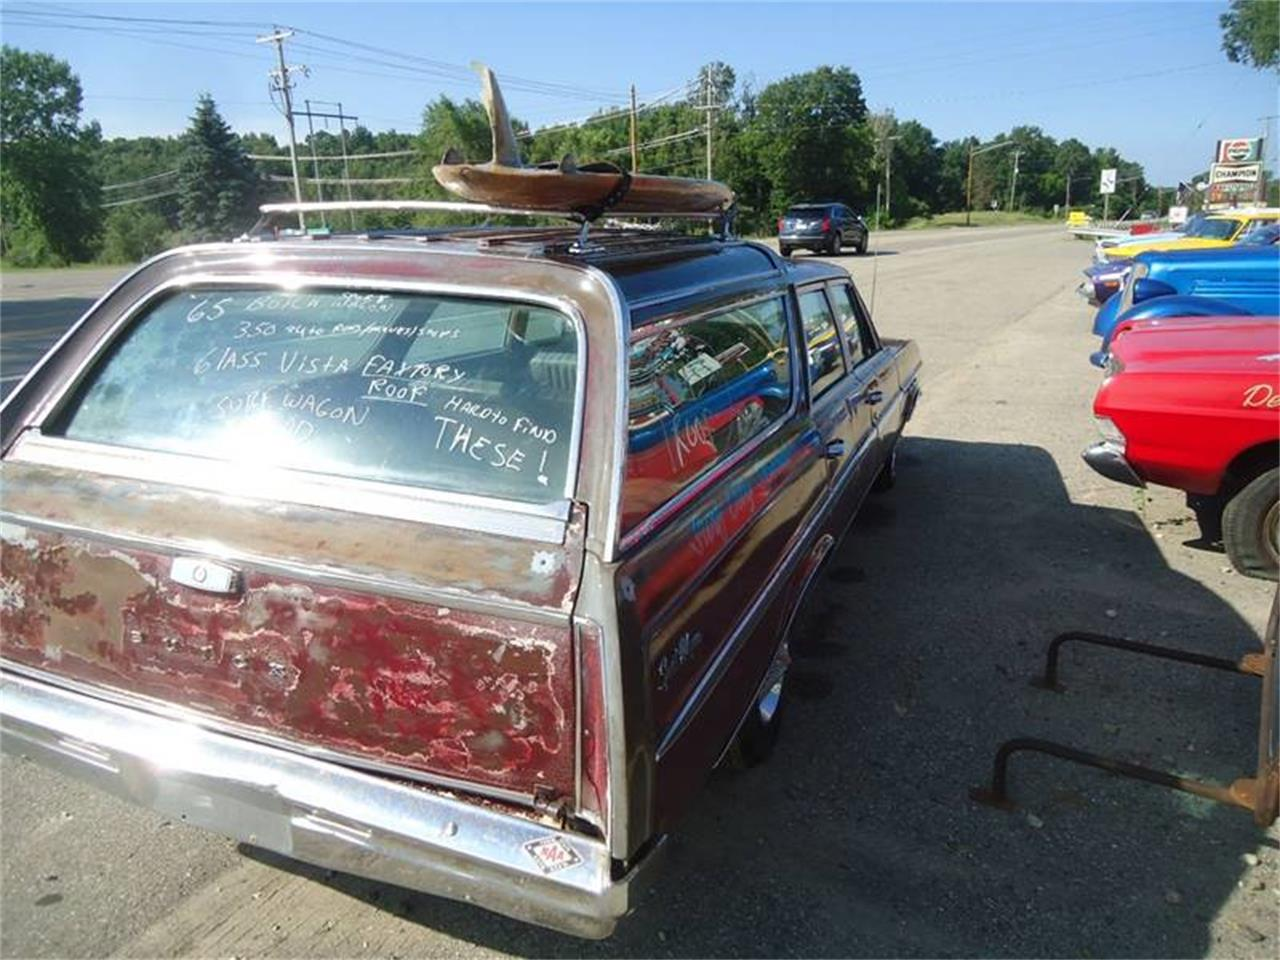 1965 sport wagon glass roof buick for sale in Jackson, MI – photo 15